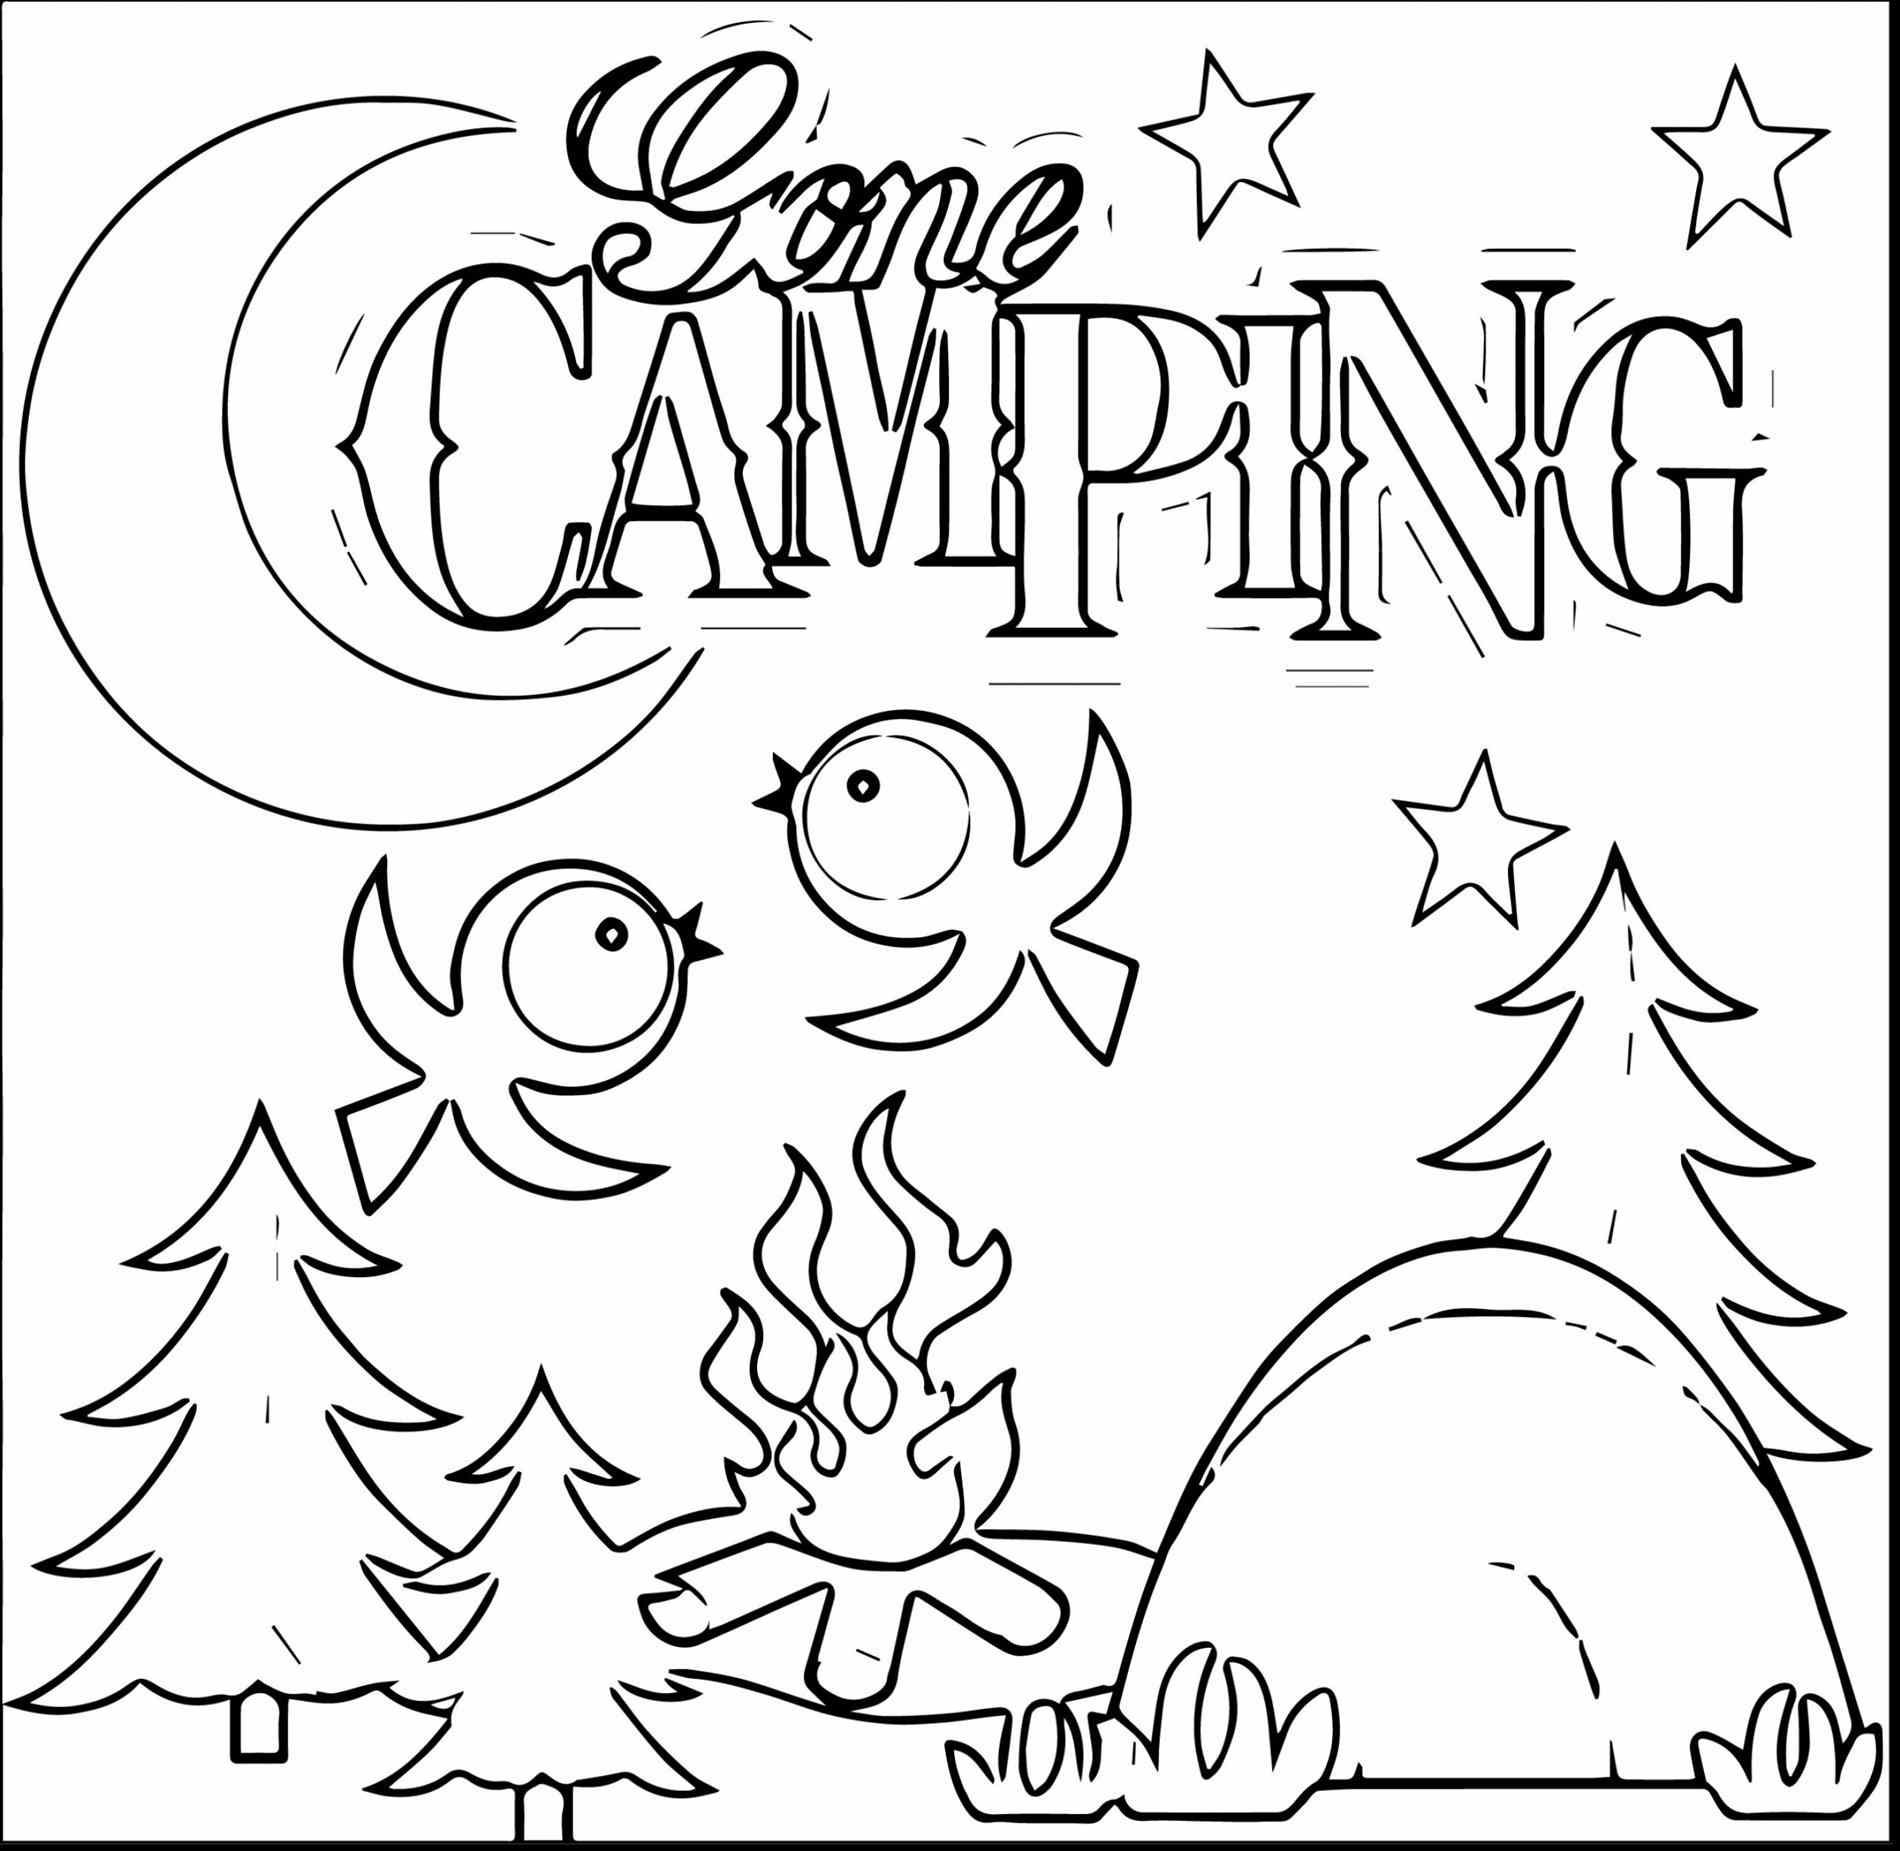 Camping Coloring Pages To Print With Coloring Pages Download And